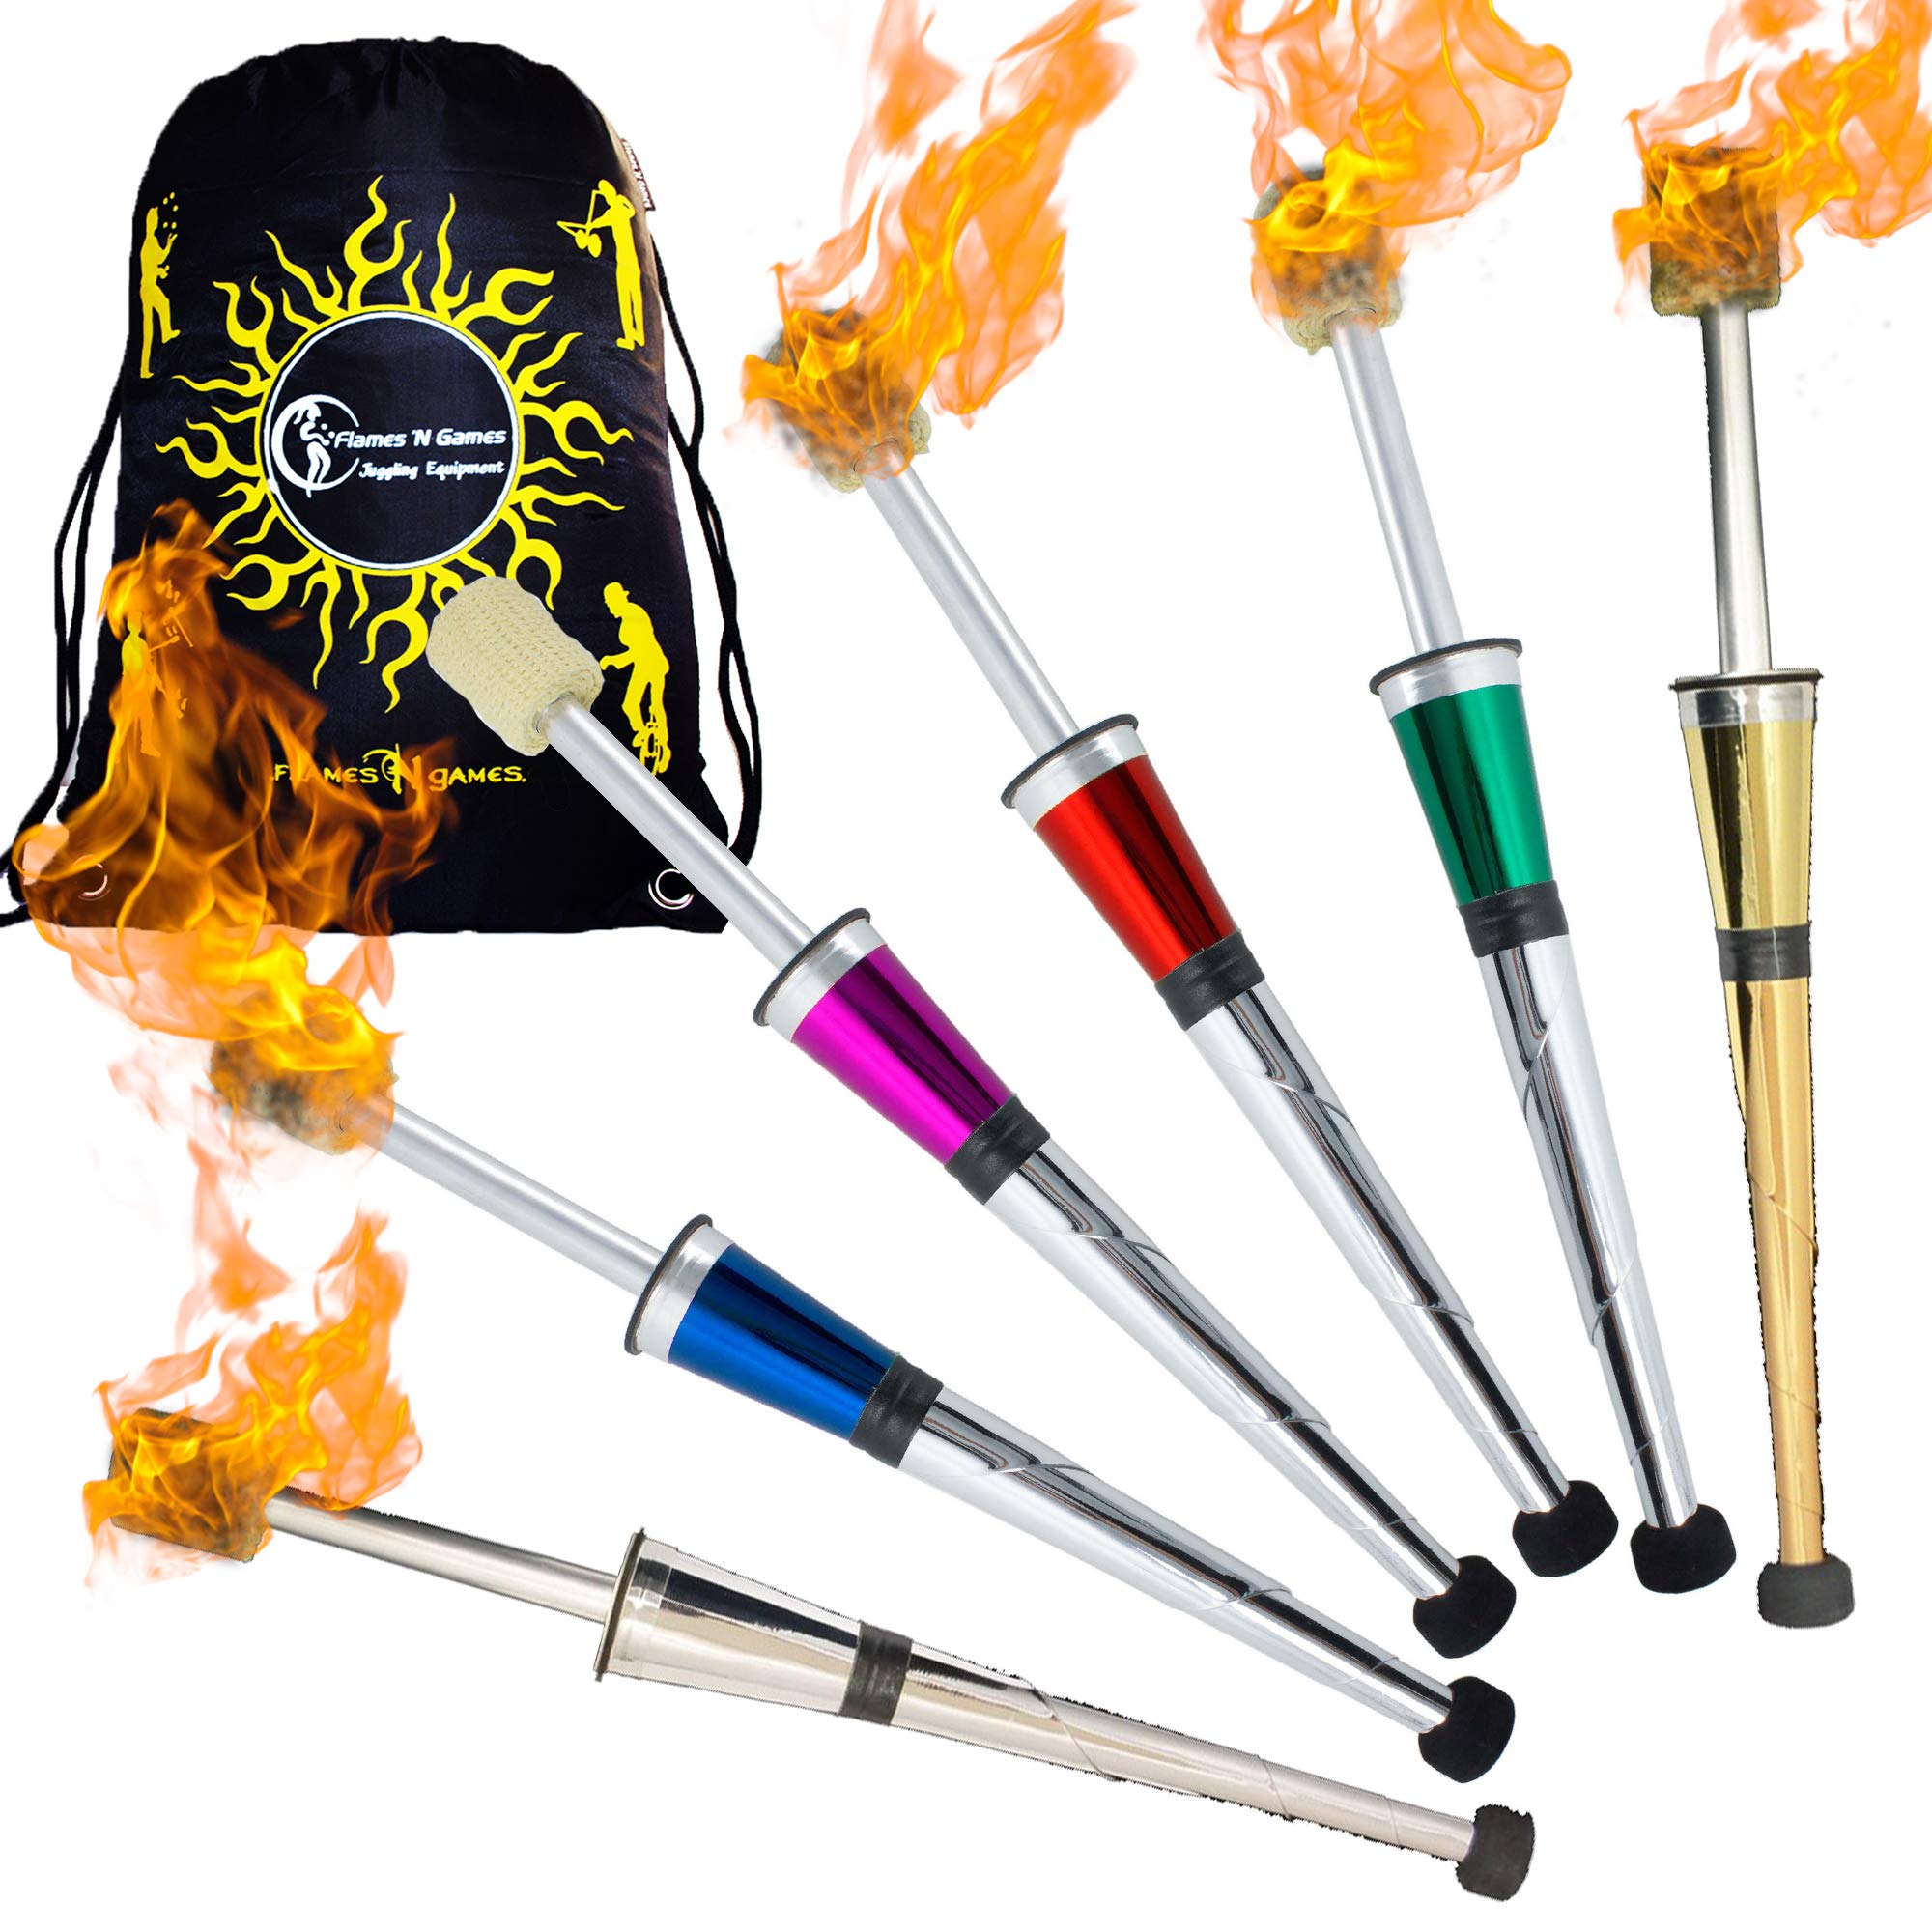 Henrys NITE FLITE Fire Juggling Torches (Price per Torch!) + Flames N Games Travel Bag! Supreme Professional Torches for Fire Juggling! (All-Silver) (Blue) by Henrys / Flames N Games